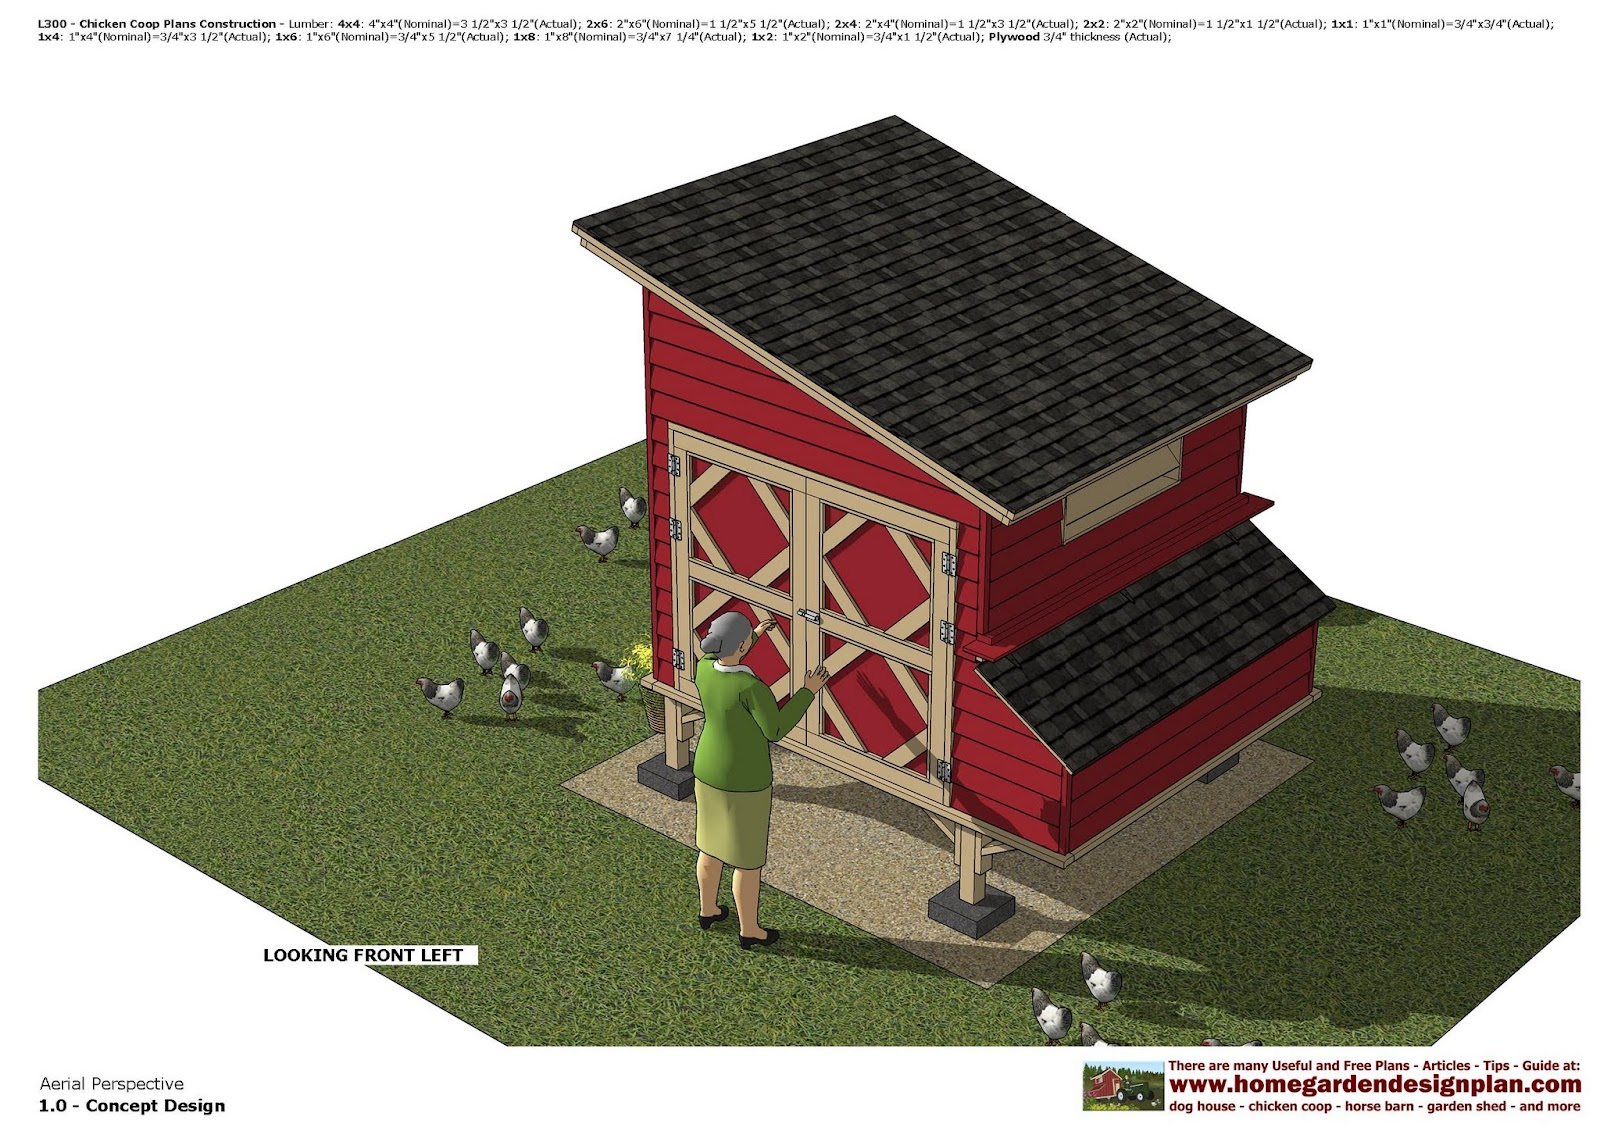 Home Garden Plans L300 Chicken Coop Plans Construction Chicken Coop Design How To Build A